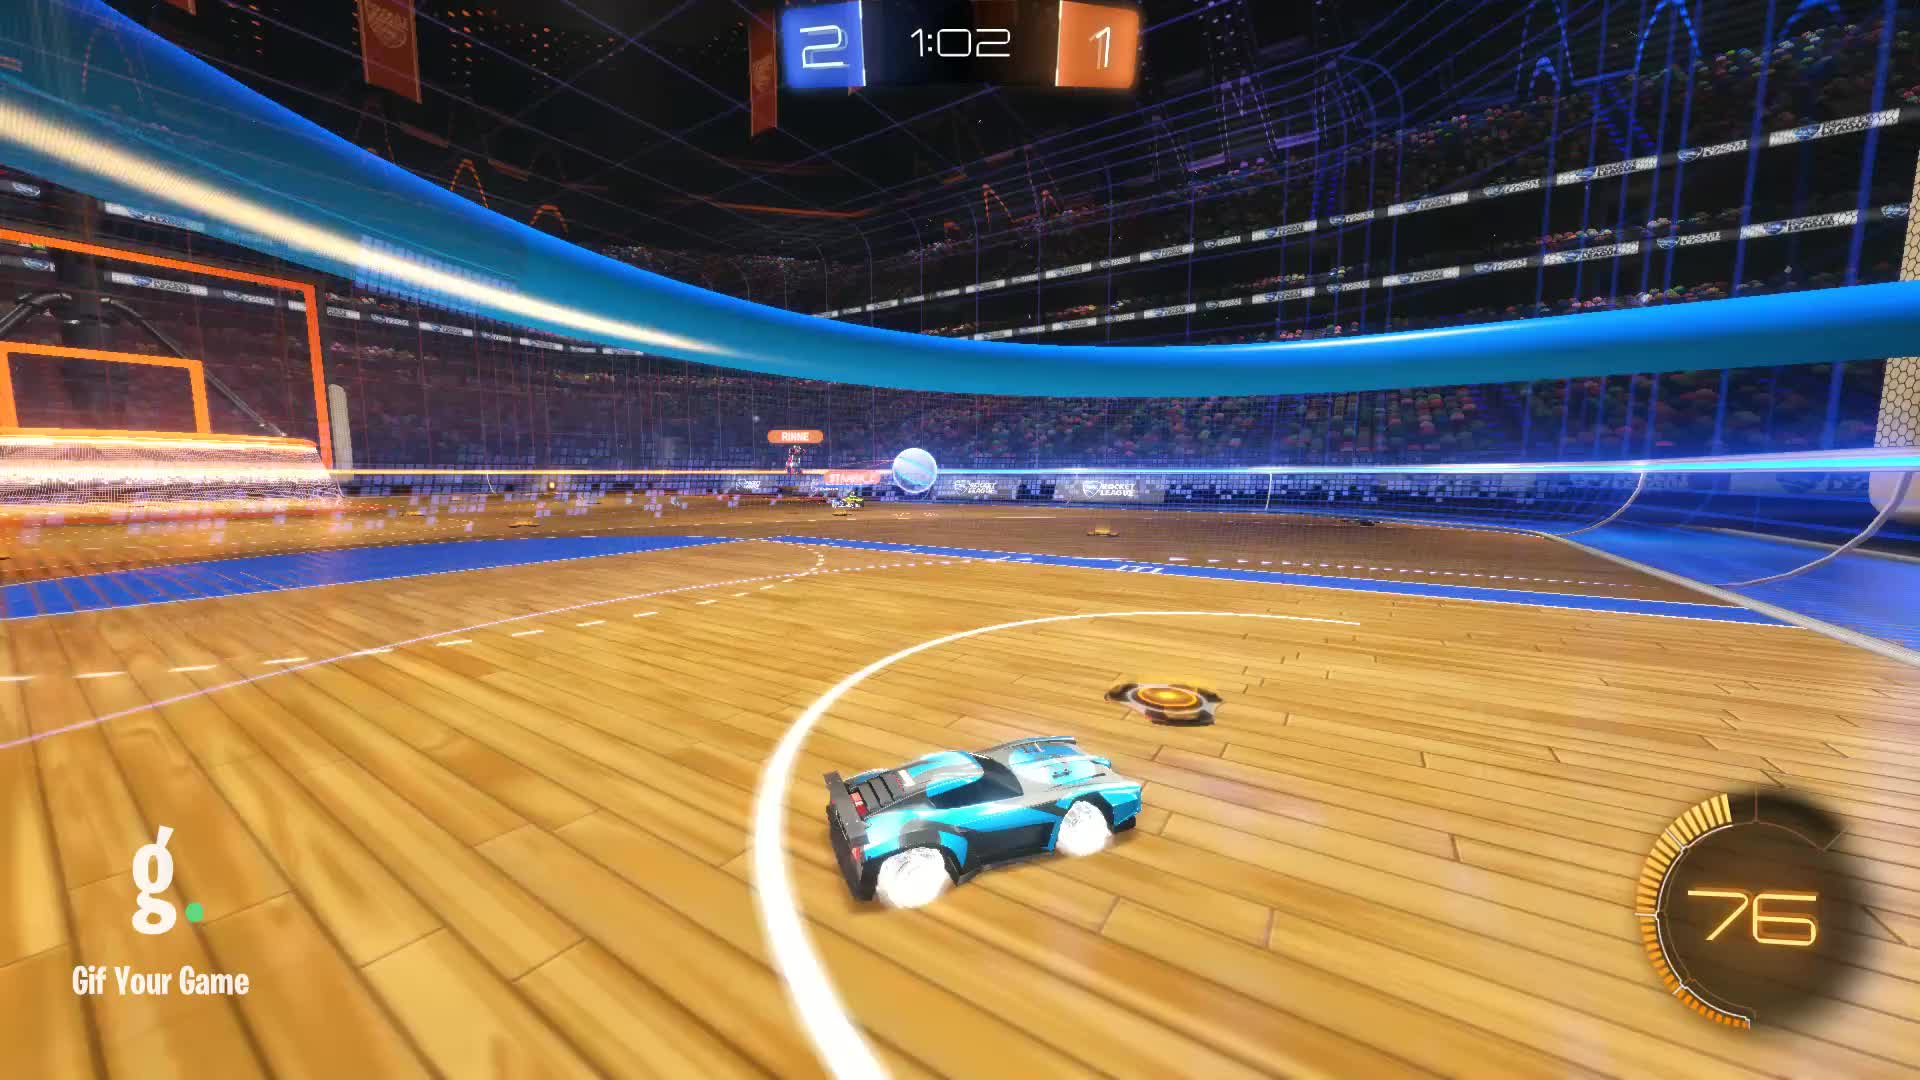 Gif Your Game, GifYourGame, Goal, Mafoomaboo, Rocket League, RocketLeague, Goal 4: Mafoomaboo GIFs